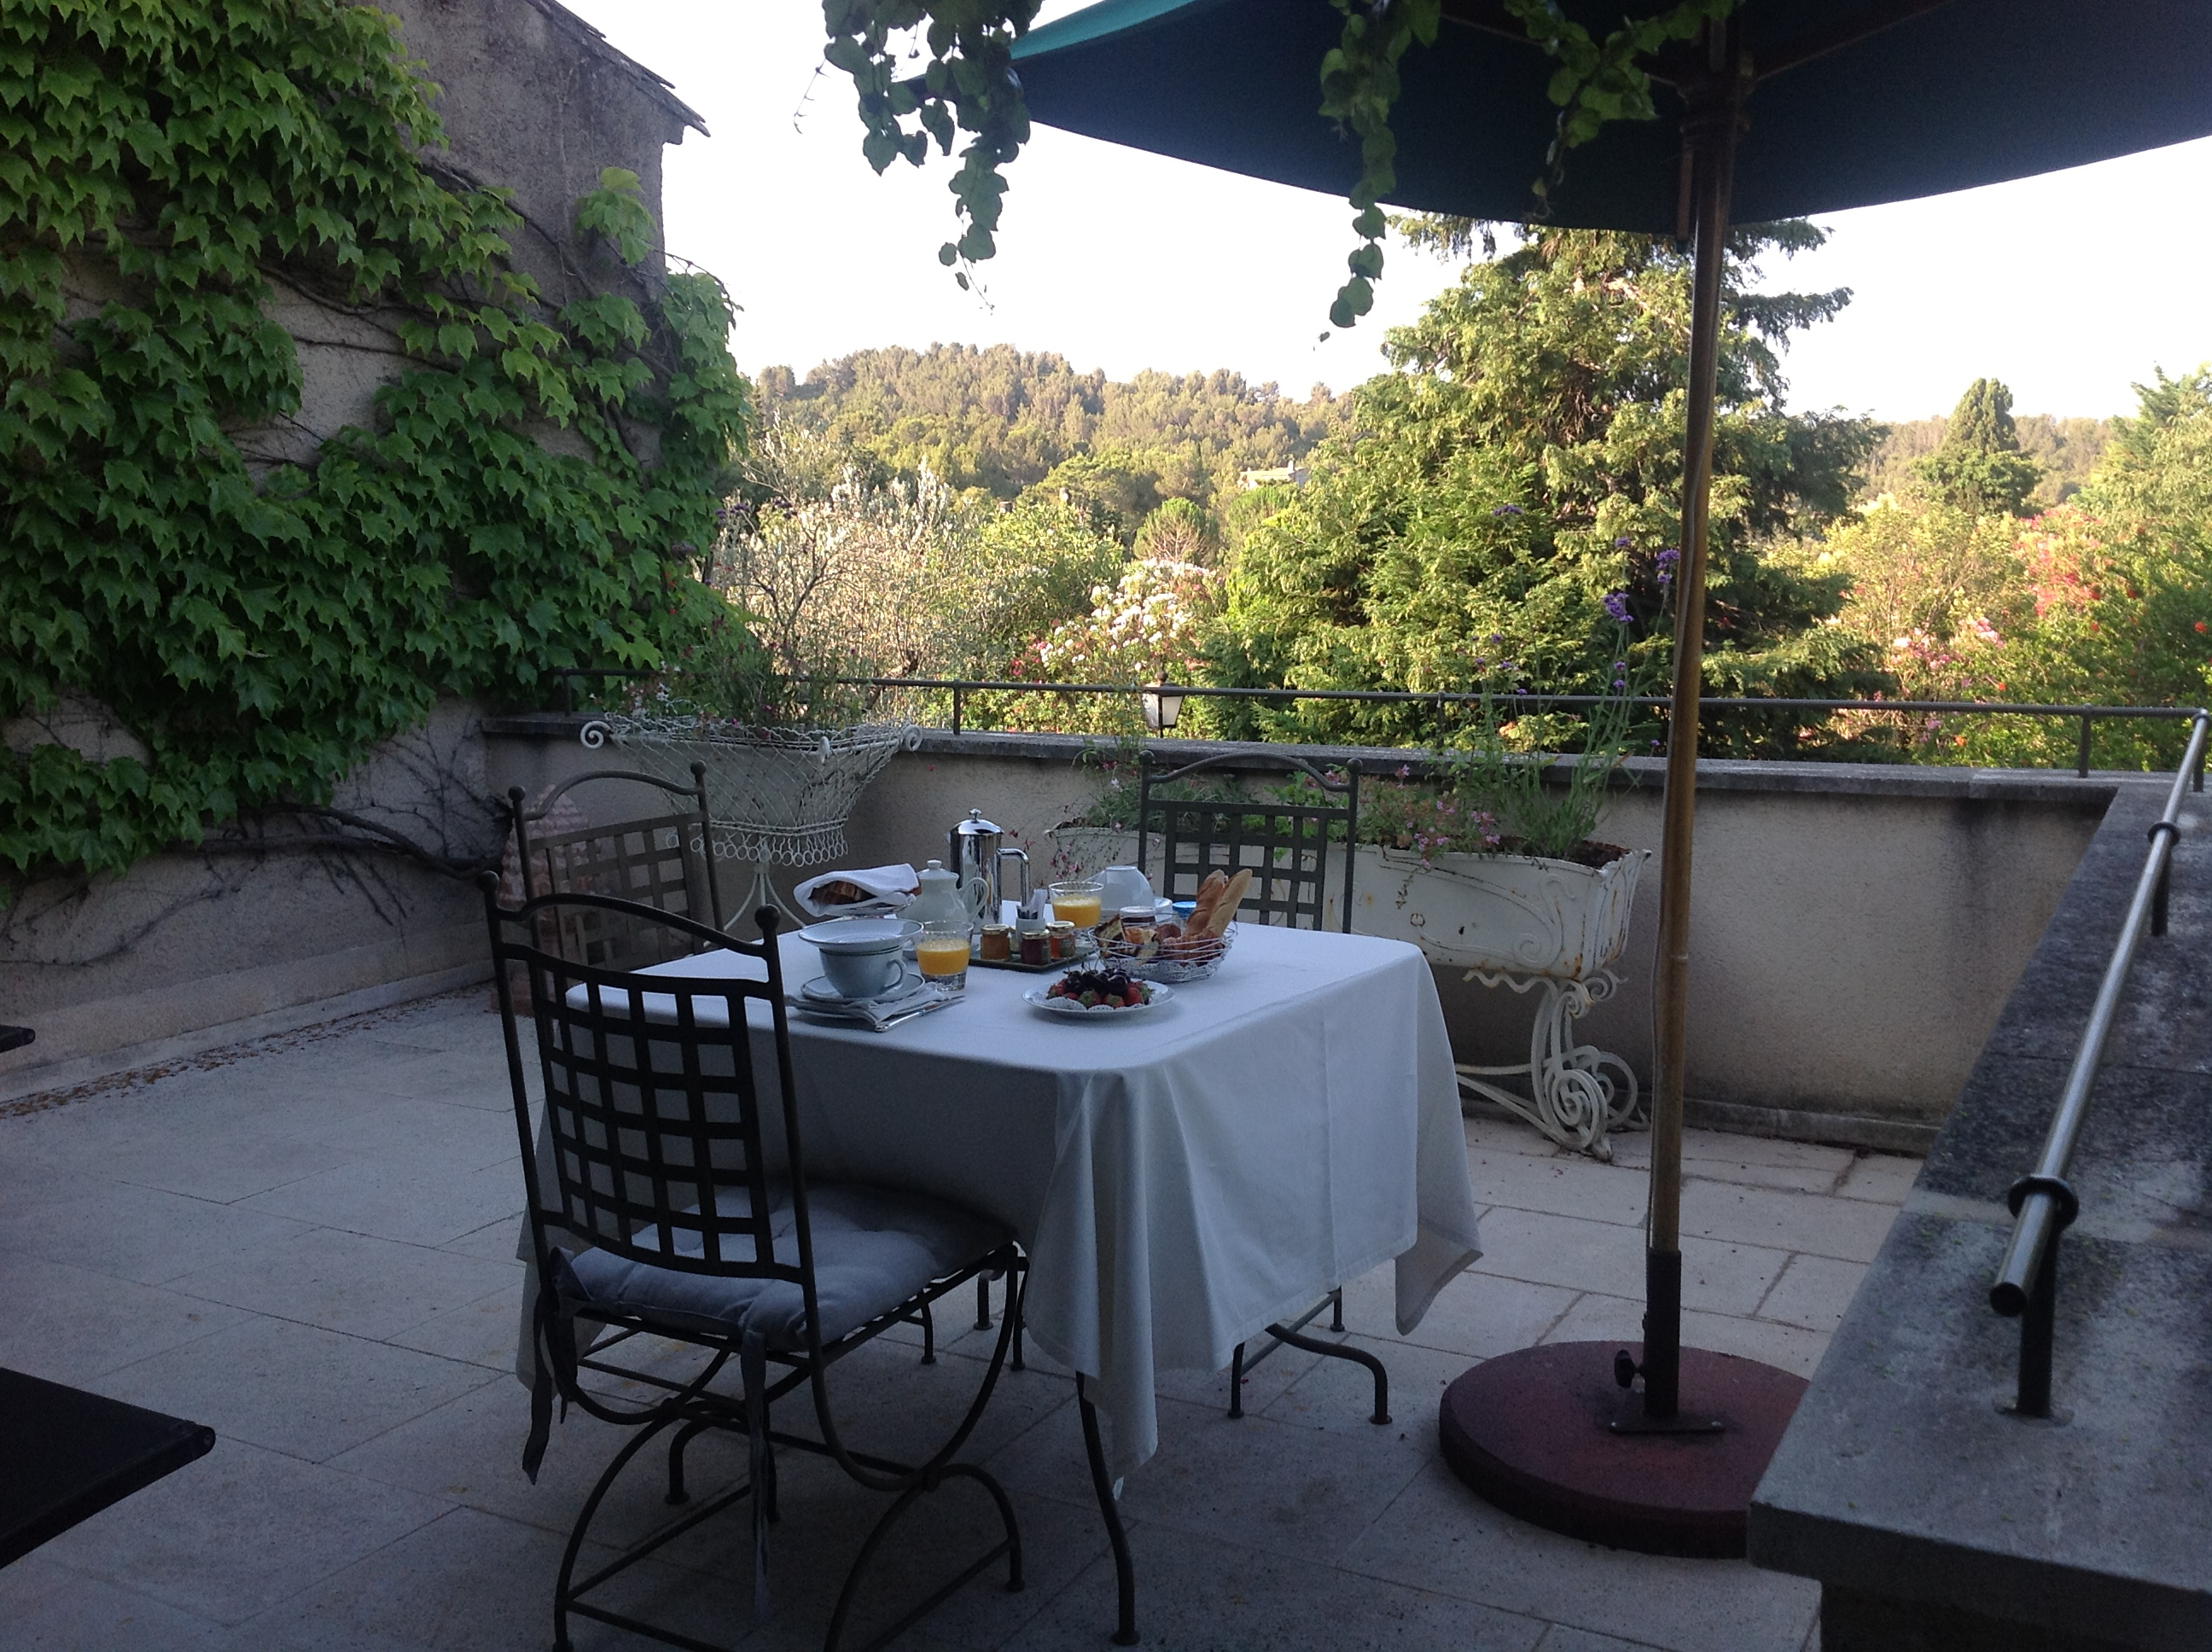 Relais chateau french for a while for The terrace brunch